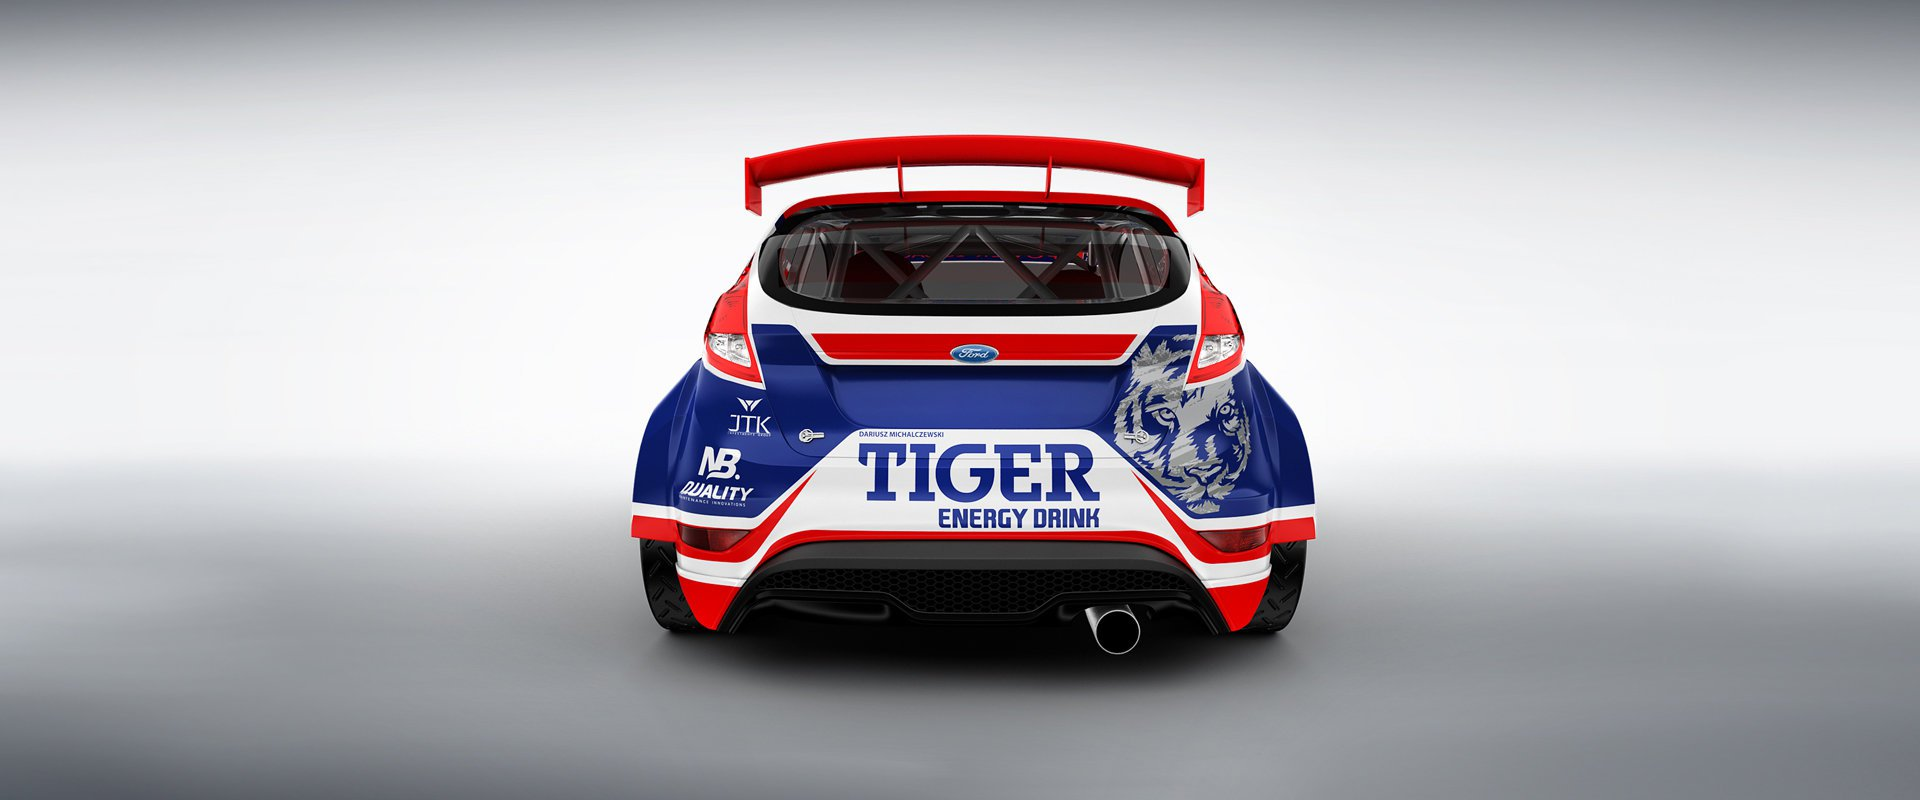 Tiger Rally Team #3